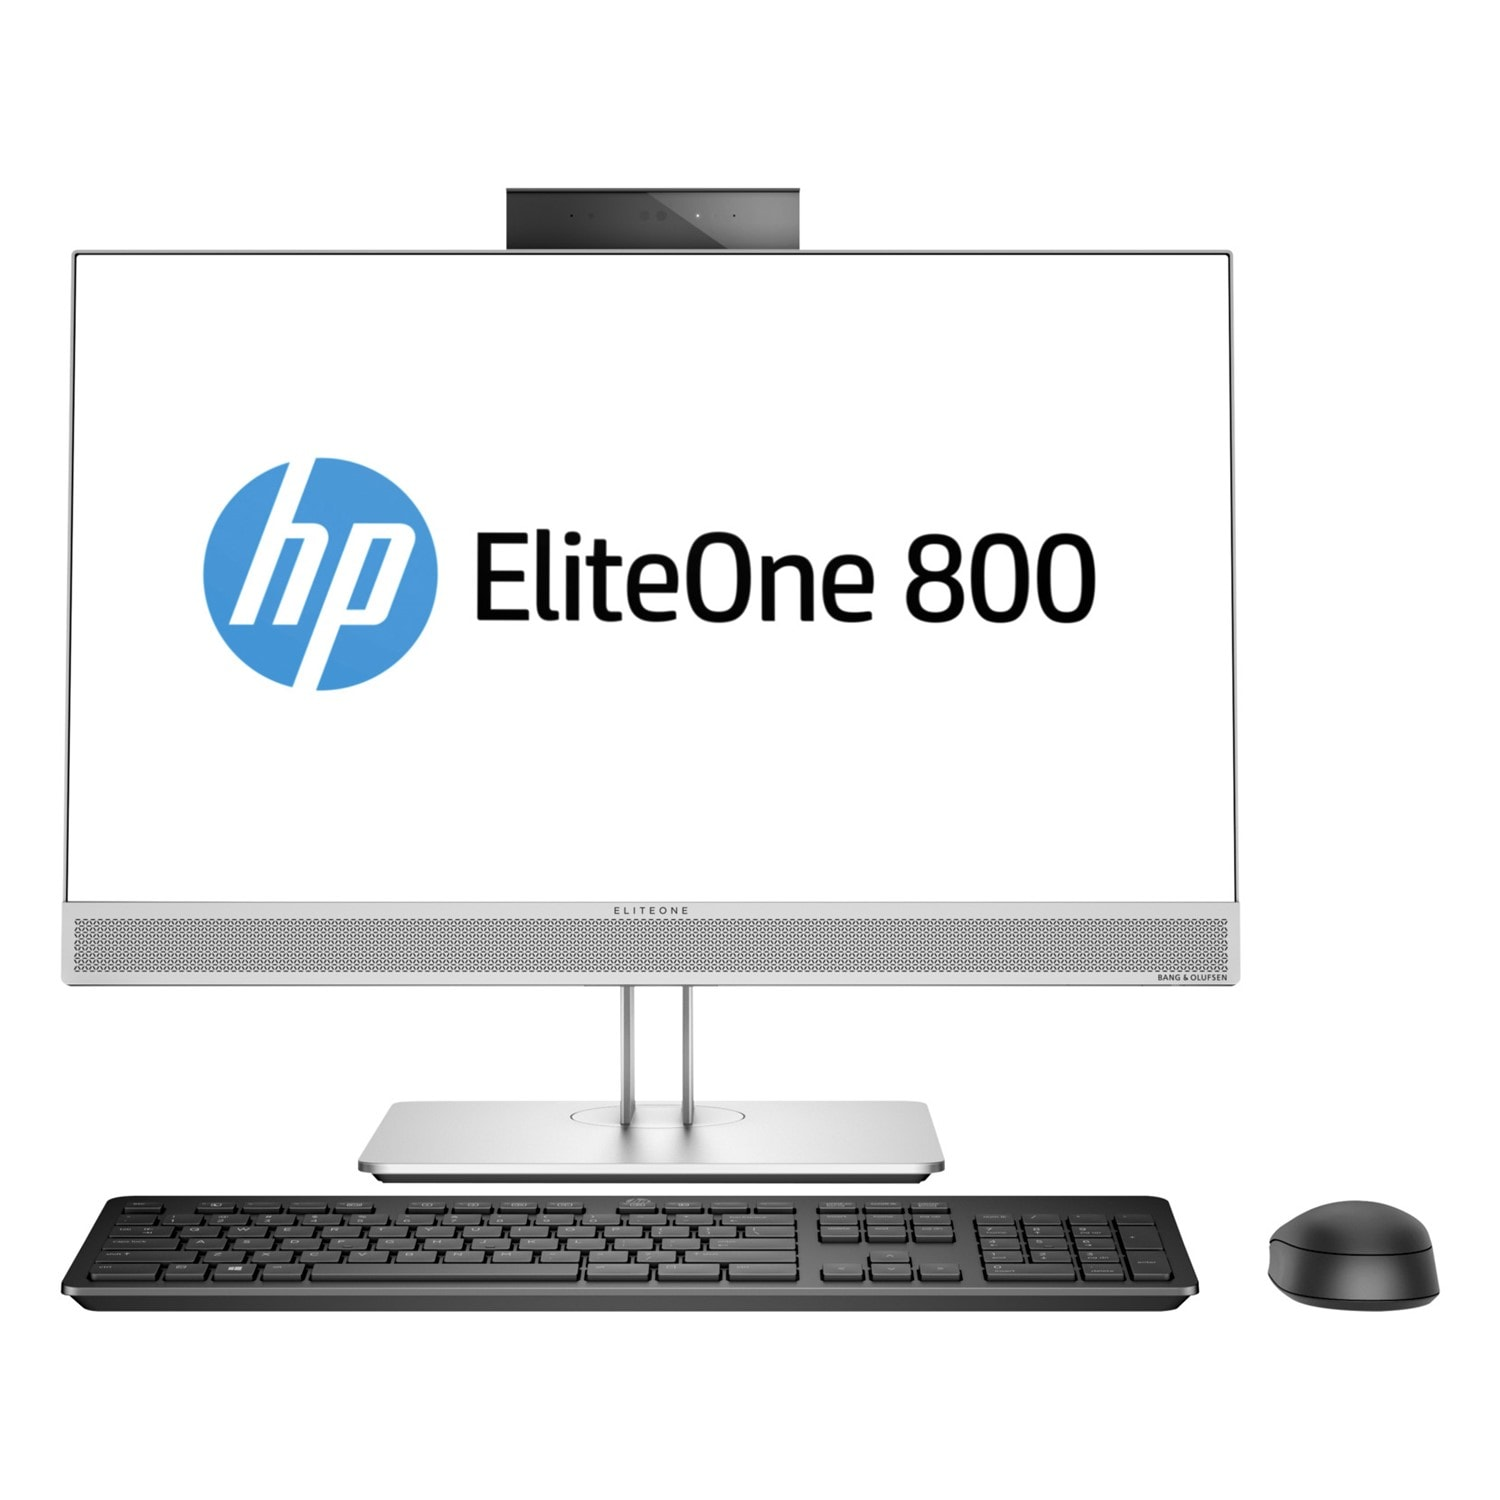 ead3bb8f6934a Buy HP EliteOne 800 G3 All-in-One Computer - Intel Core i5 (7th Gen ...